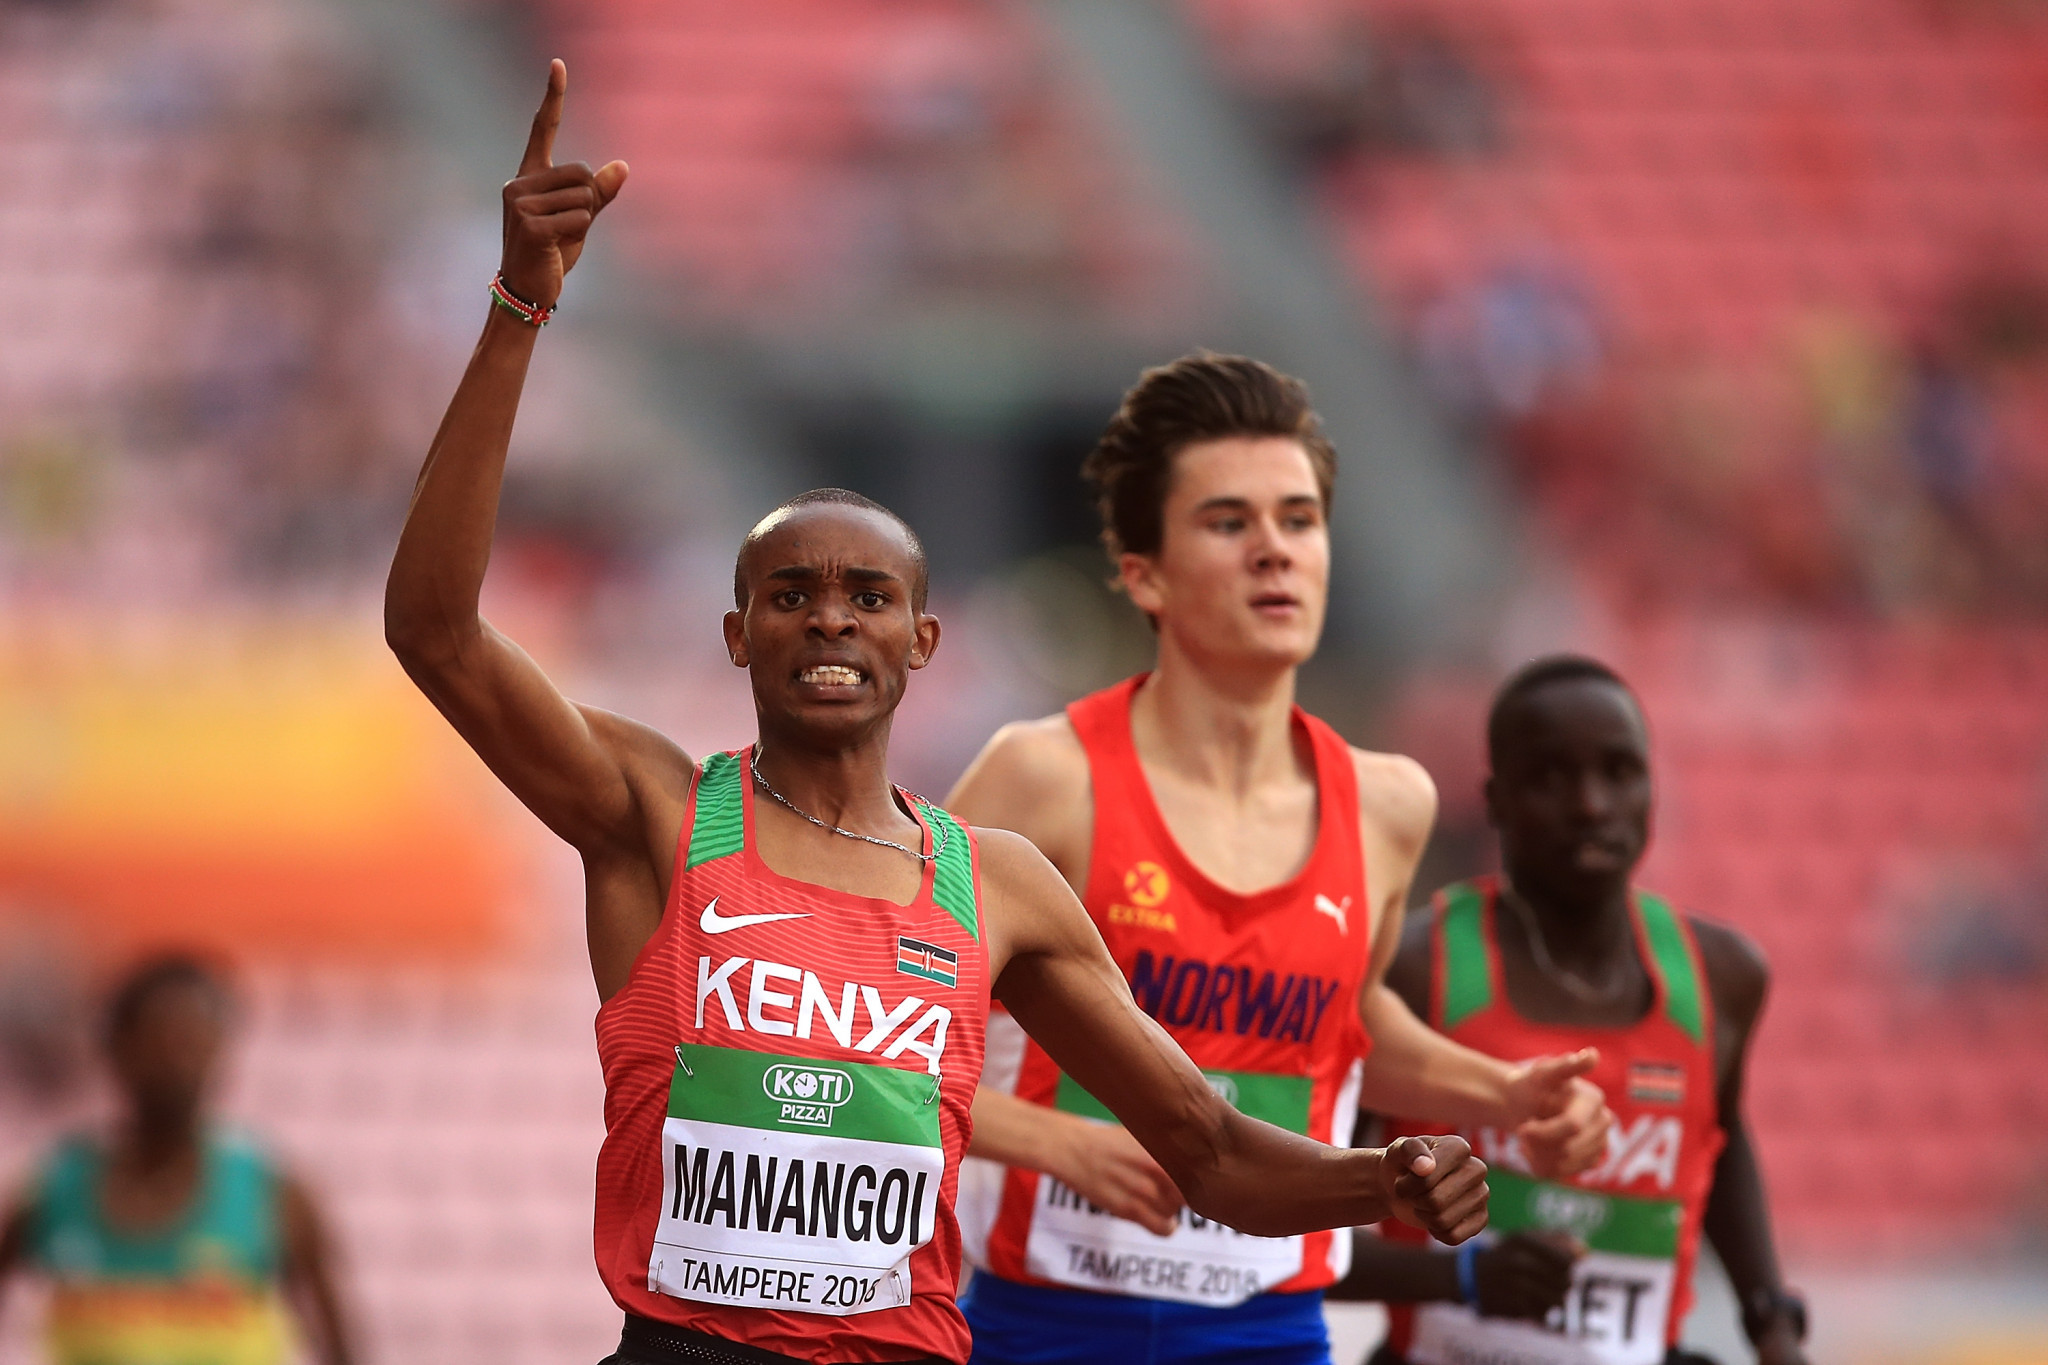 George Mananhoi beats Jakob Ingebrigtsen to the IAAF World Ubder-20 1,500m title in Tampere, Finland ©Getty Images